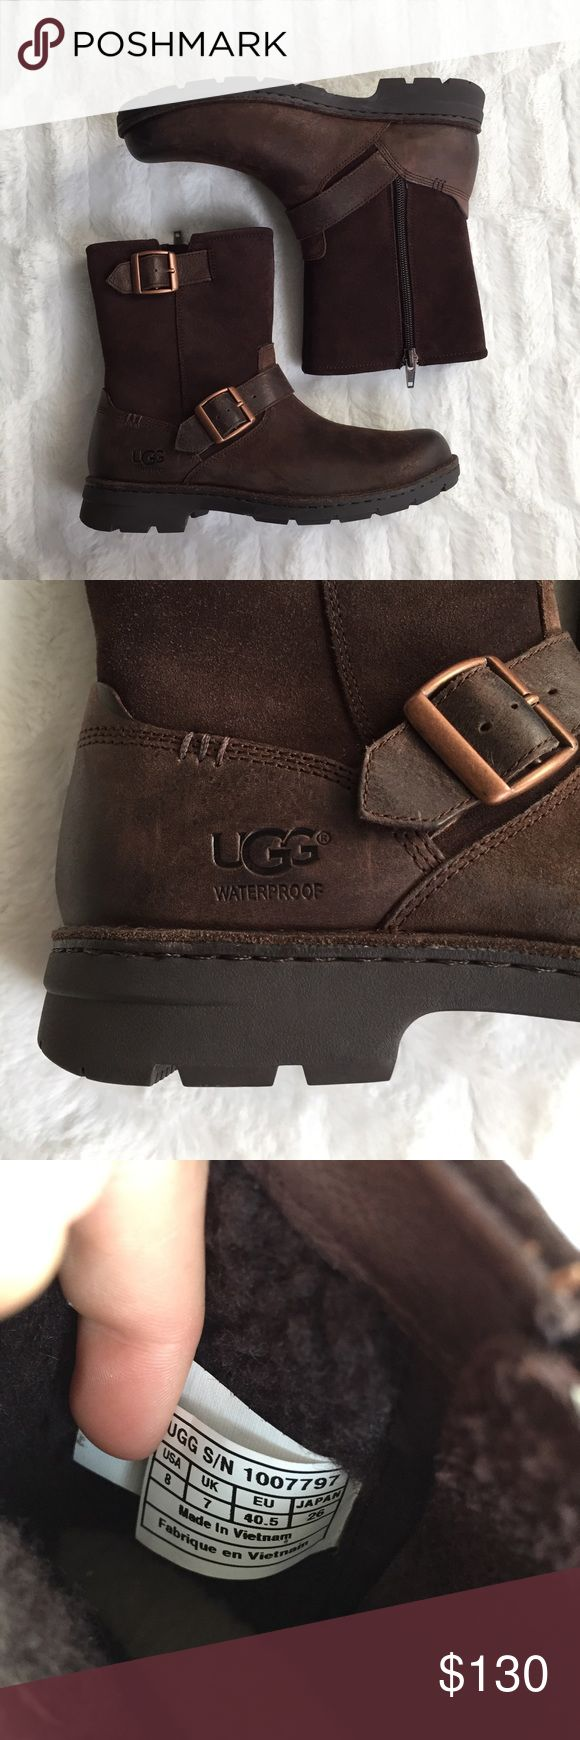 """UGG Messner Boots BNWT, Is a men's size 8, but fits size 9 women's. """"The Messner protects from the elements and wards off chills with a weather rating of up to -20 degrees Celsius. This seam sealed boot features 200g Thinsulate™ lining for added warmth, shaft lined with 10mm Curly UGGpure™, and a medial zipper for easy foot entry. The 7mm Curly UGGpure sockliner naturally wicks away moisture. Molded White Spider Rubber outsole."""" No trades. Does not come with box. UGG Shoes Winter & Rain…"""